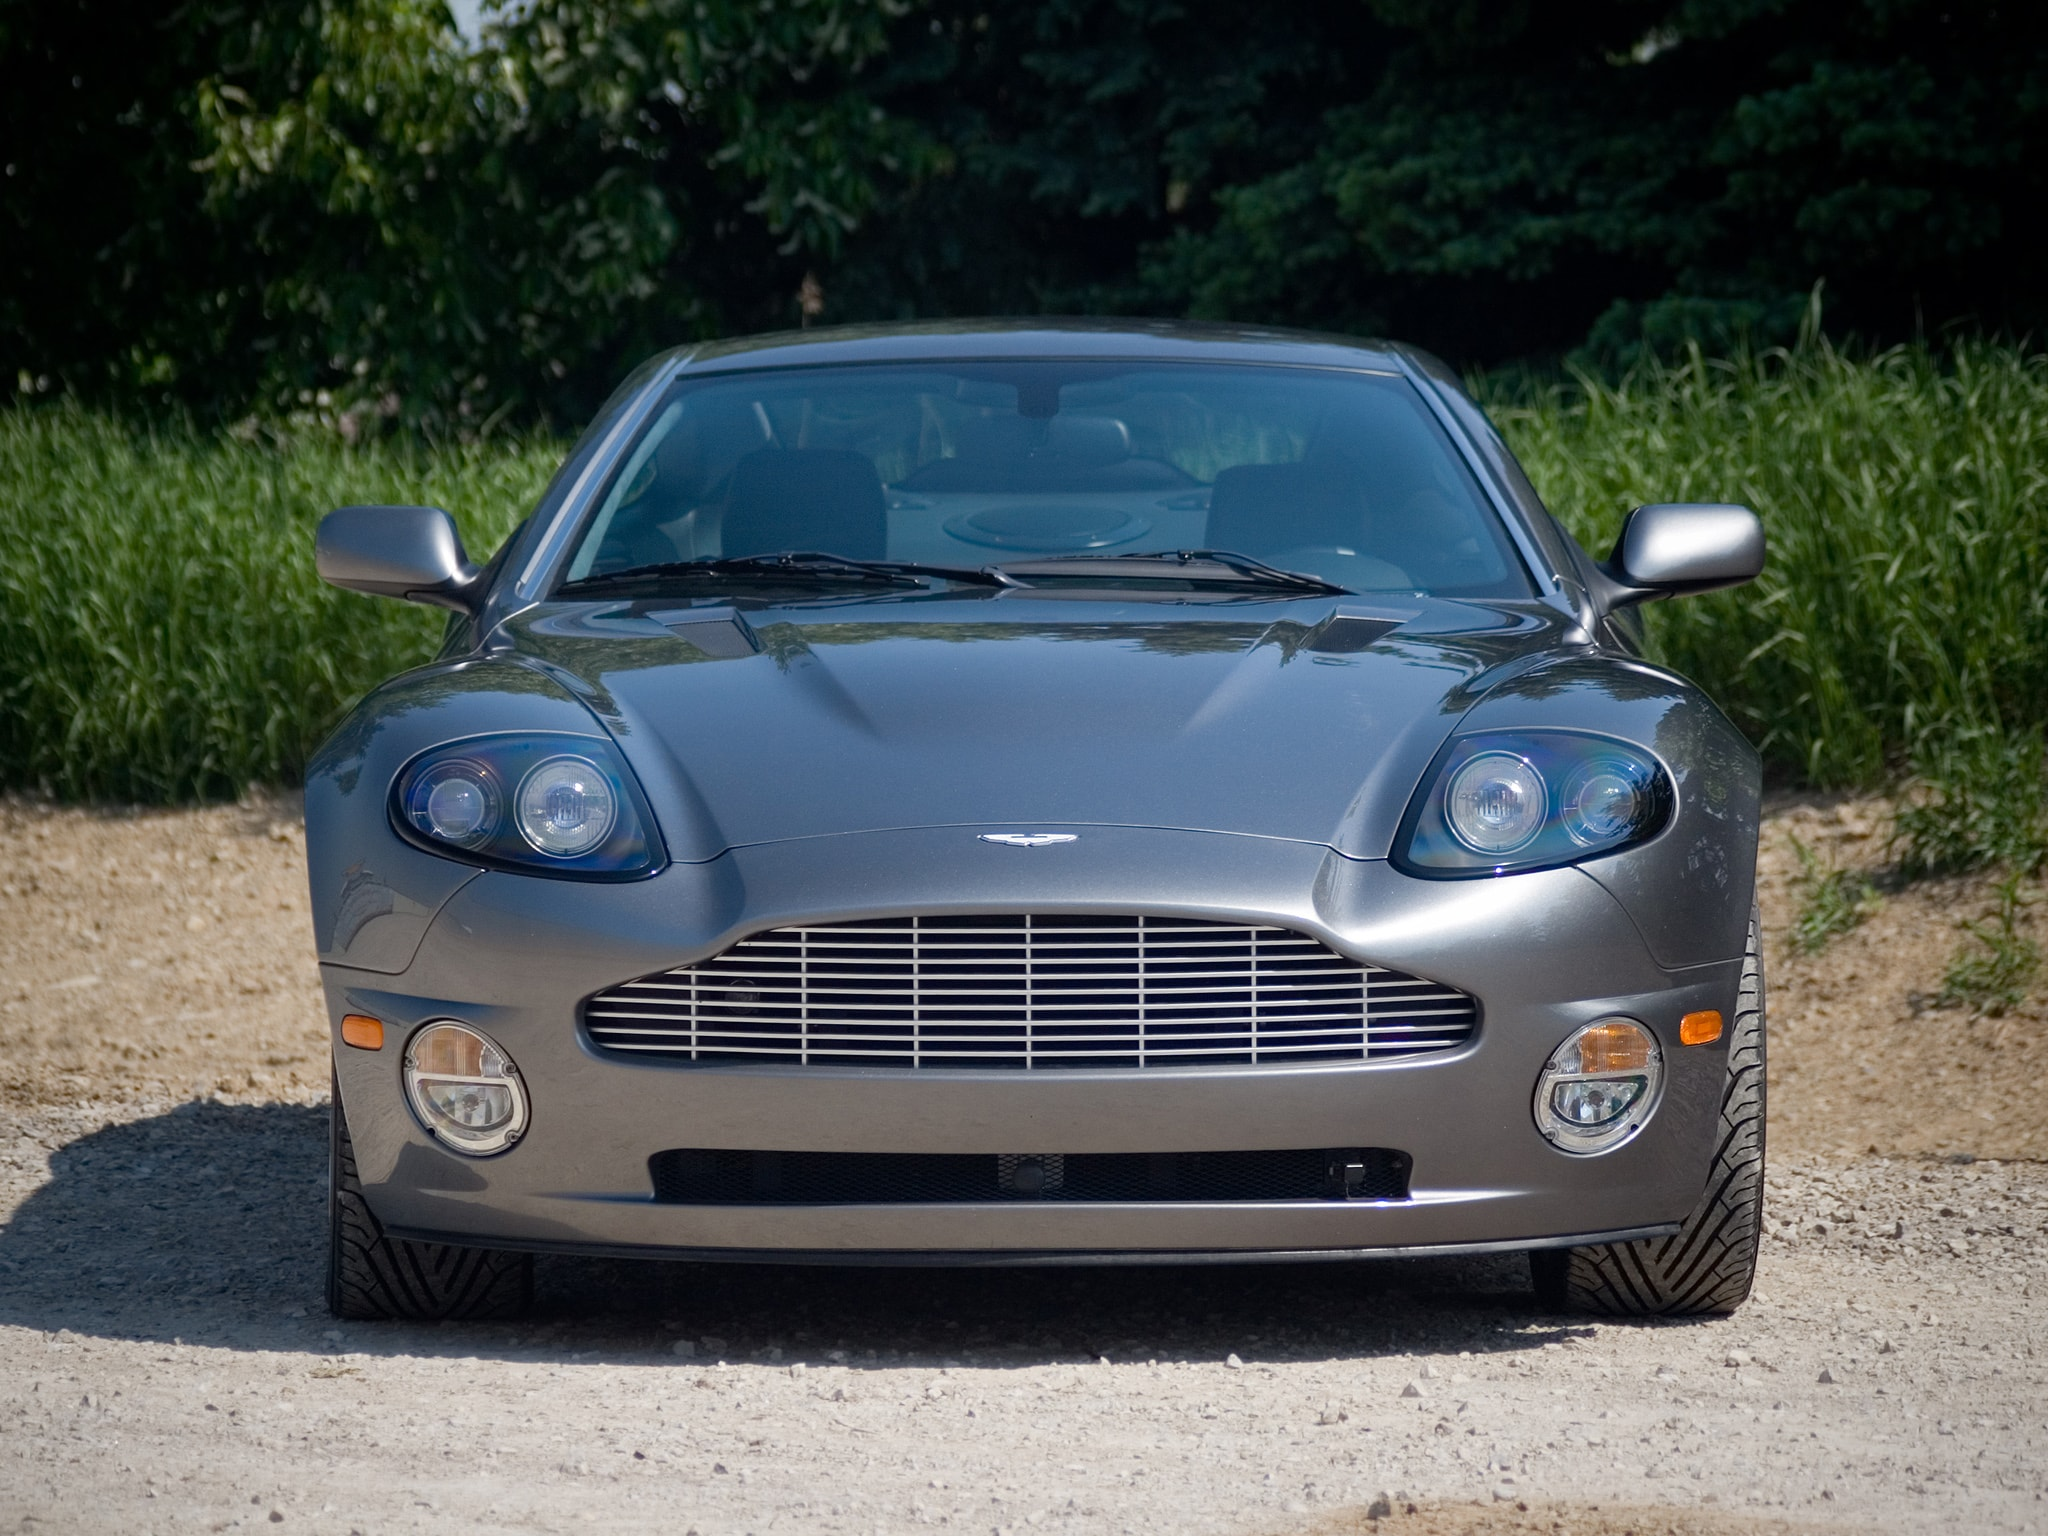 2001 Aston Martin Vanquish Widescreen for desktop